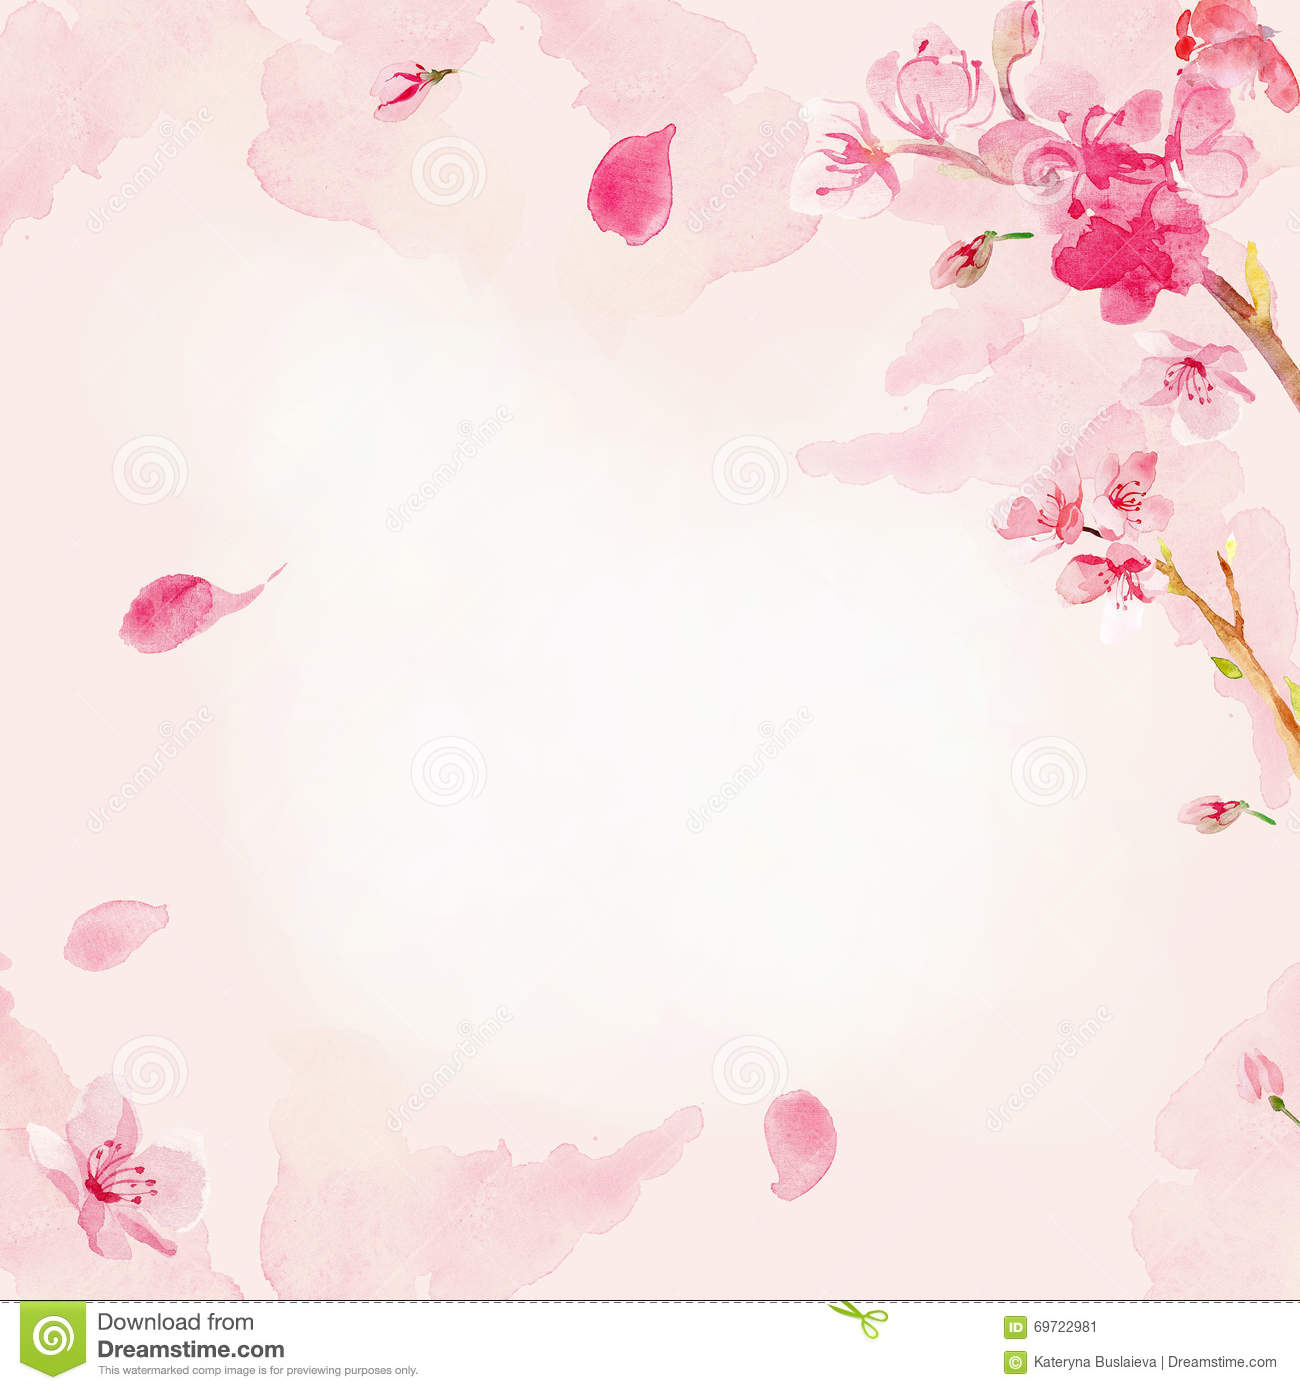 watercolor sakura flower background stock illustration